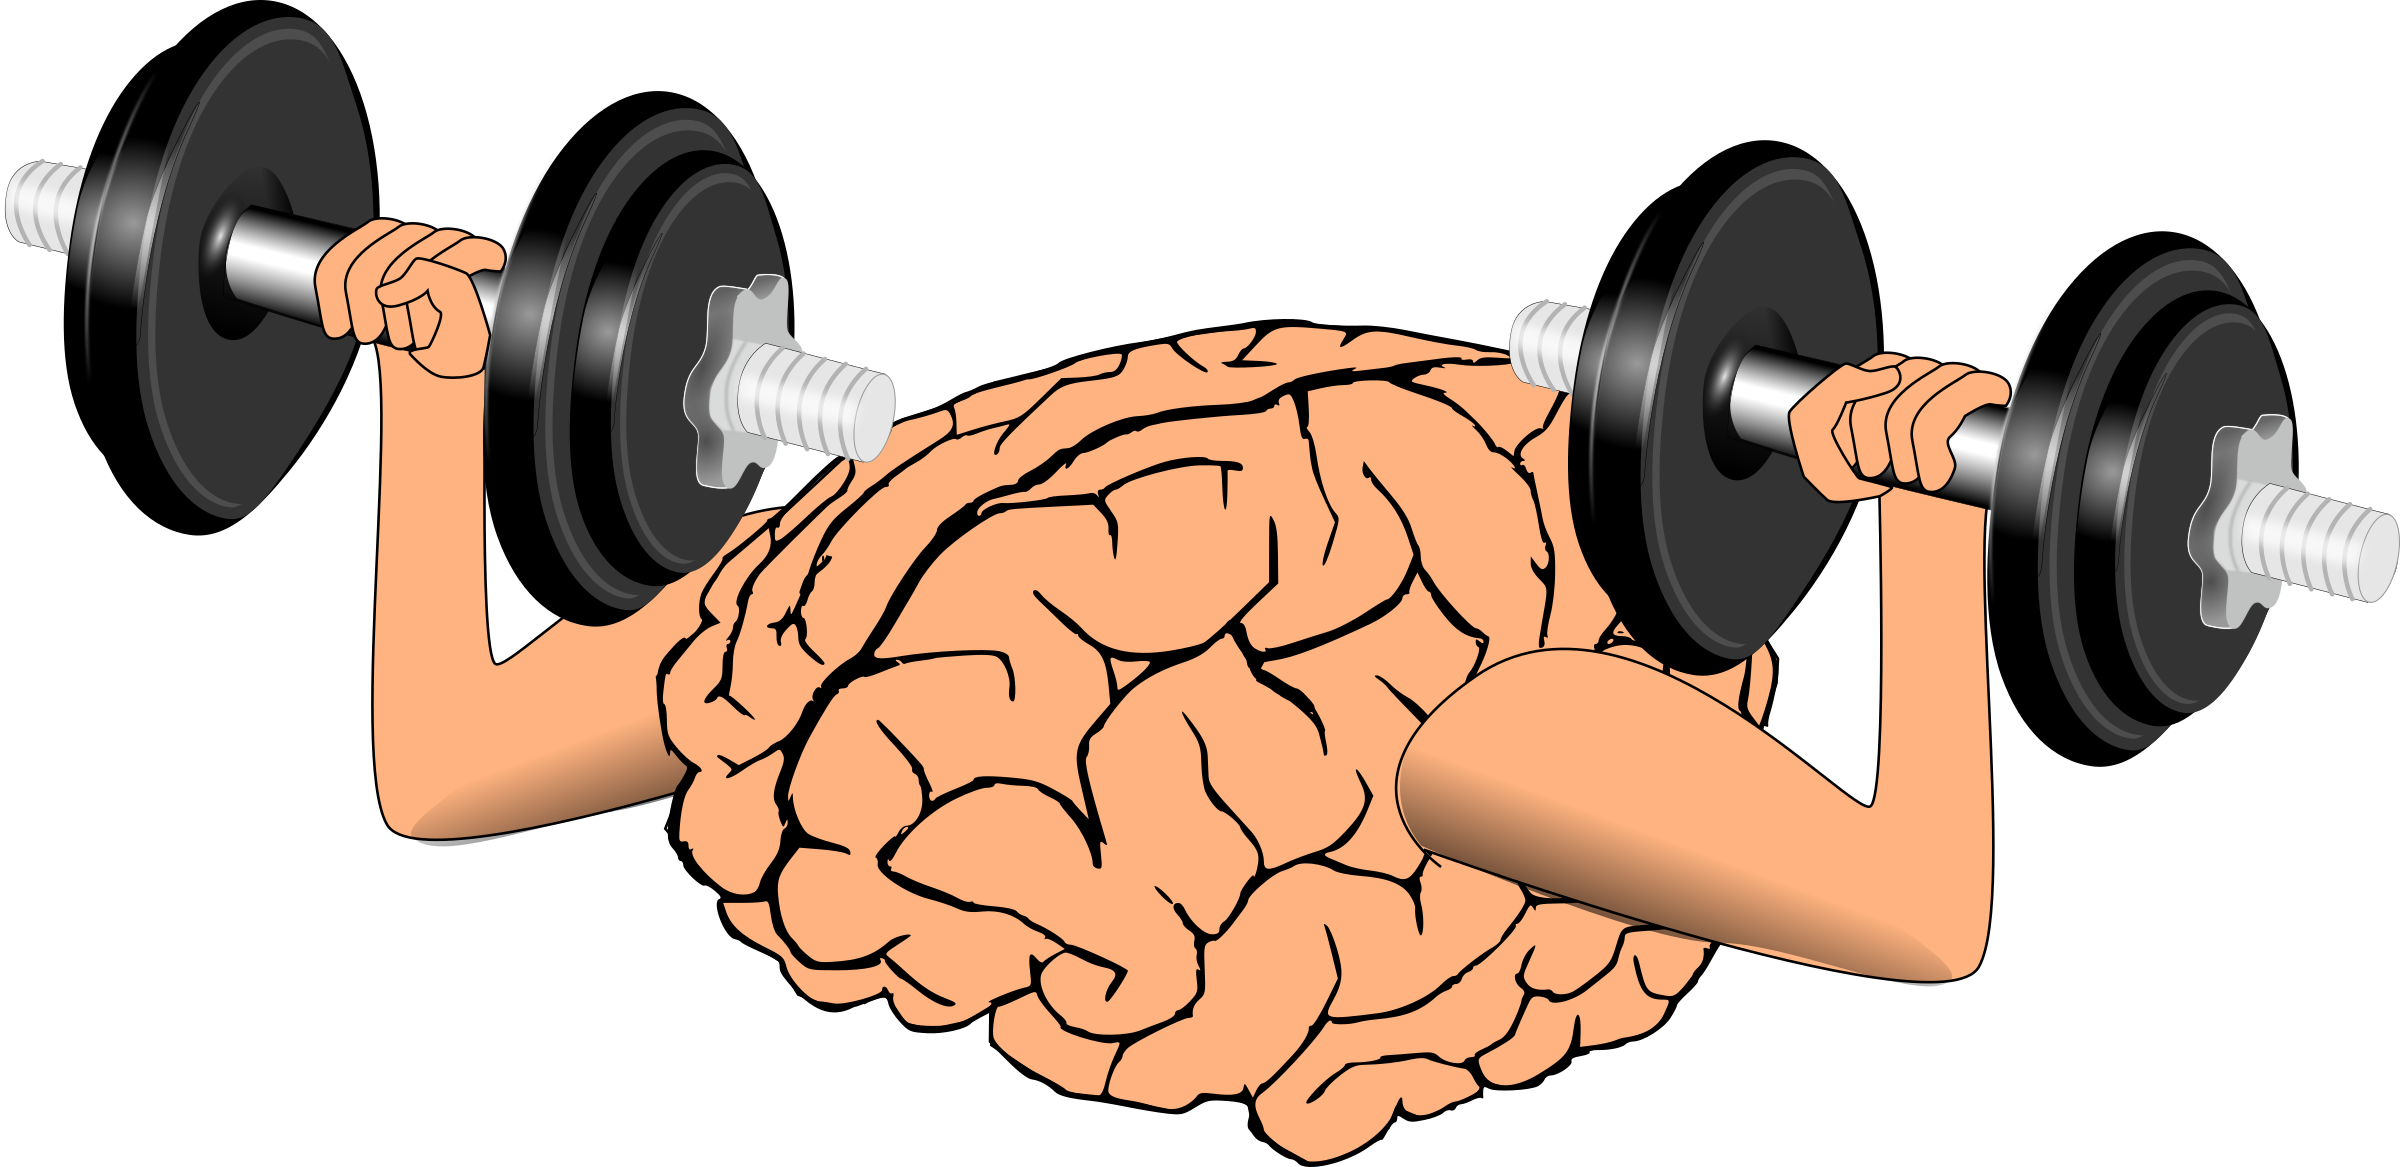 Muscles clipart brain. Training big image png